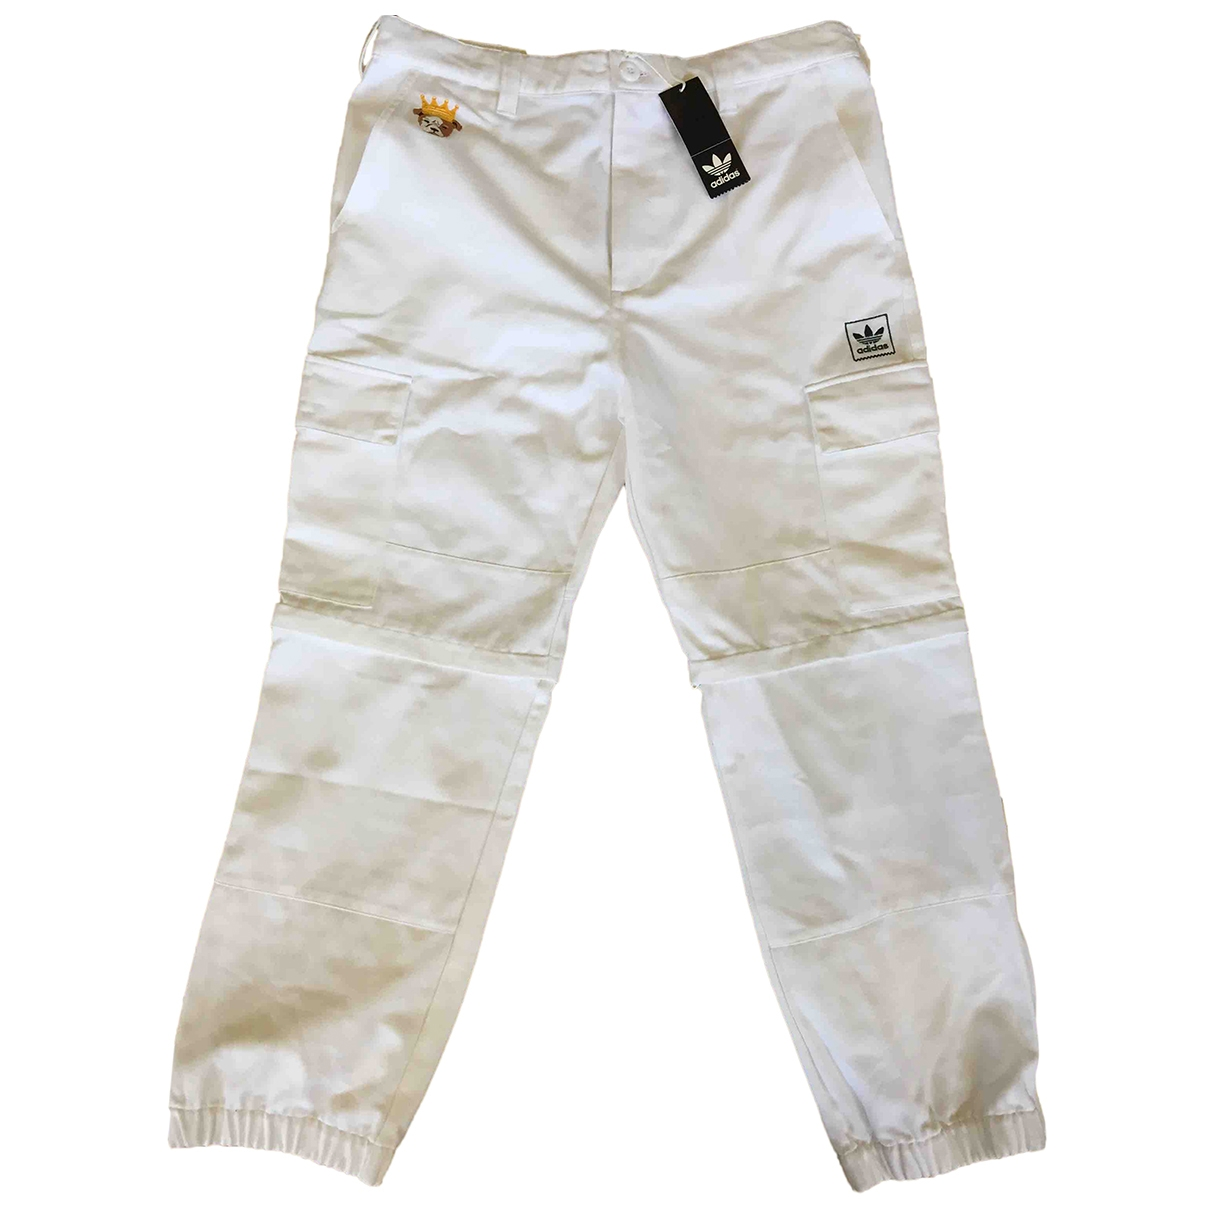 Adidas \N White Cotton Trousers for Men 34 UK - US